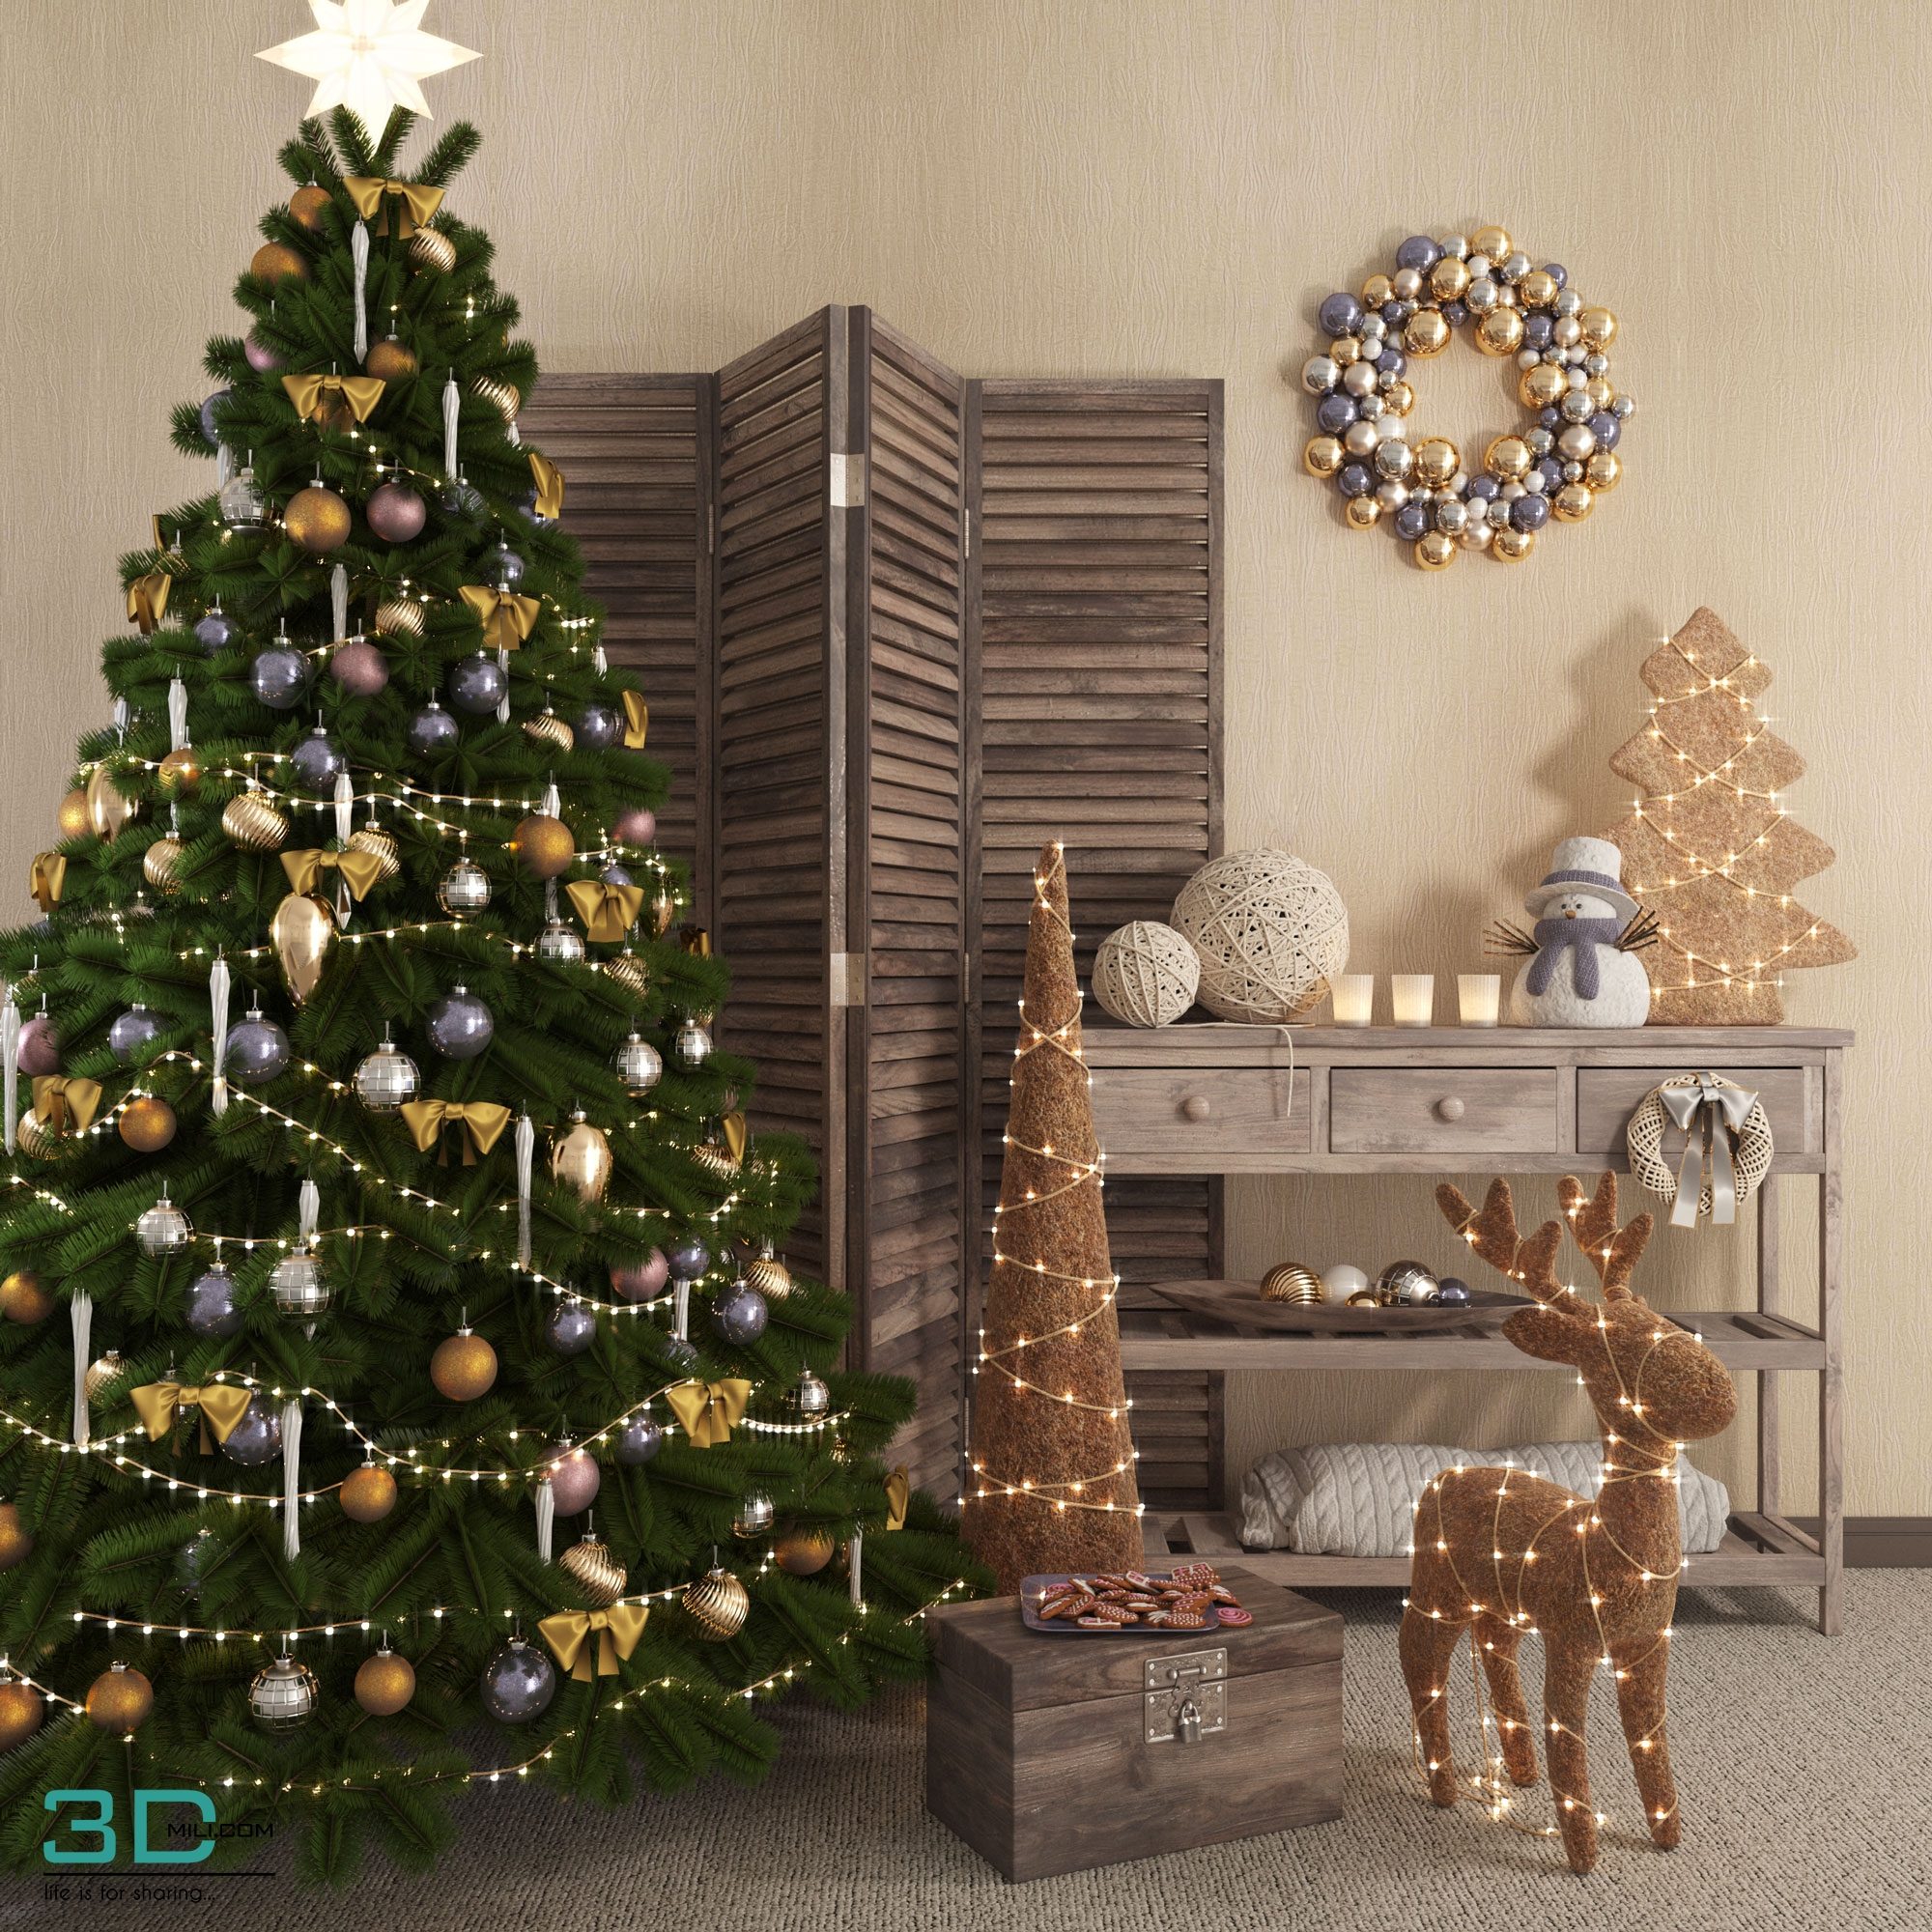 3dSkyHost: Christmas Decor 2 3dmodel Free Download